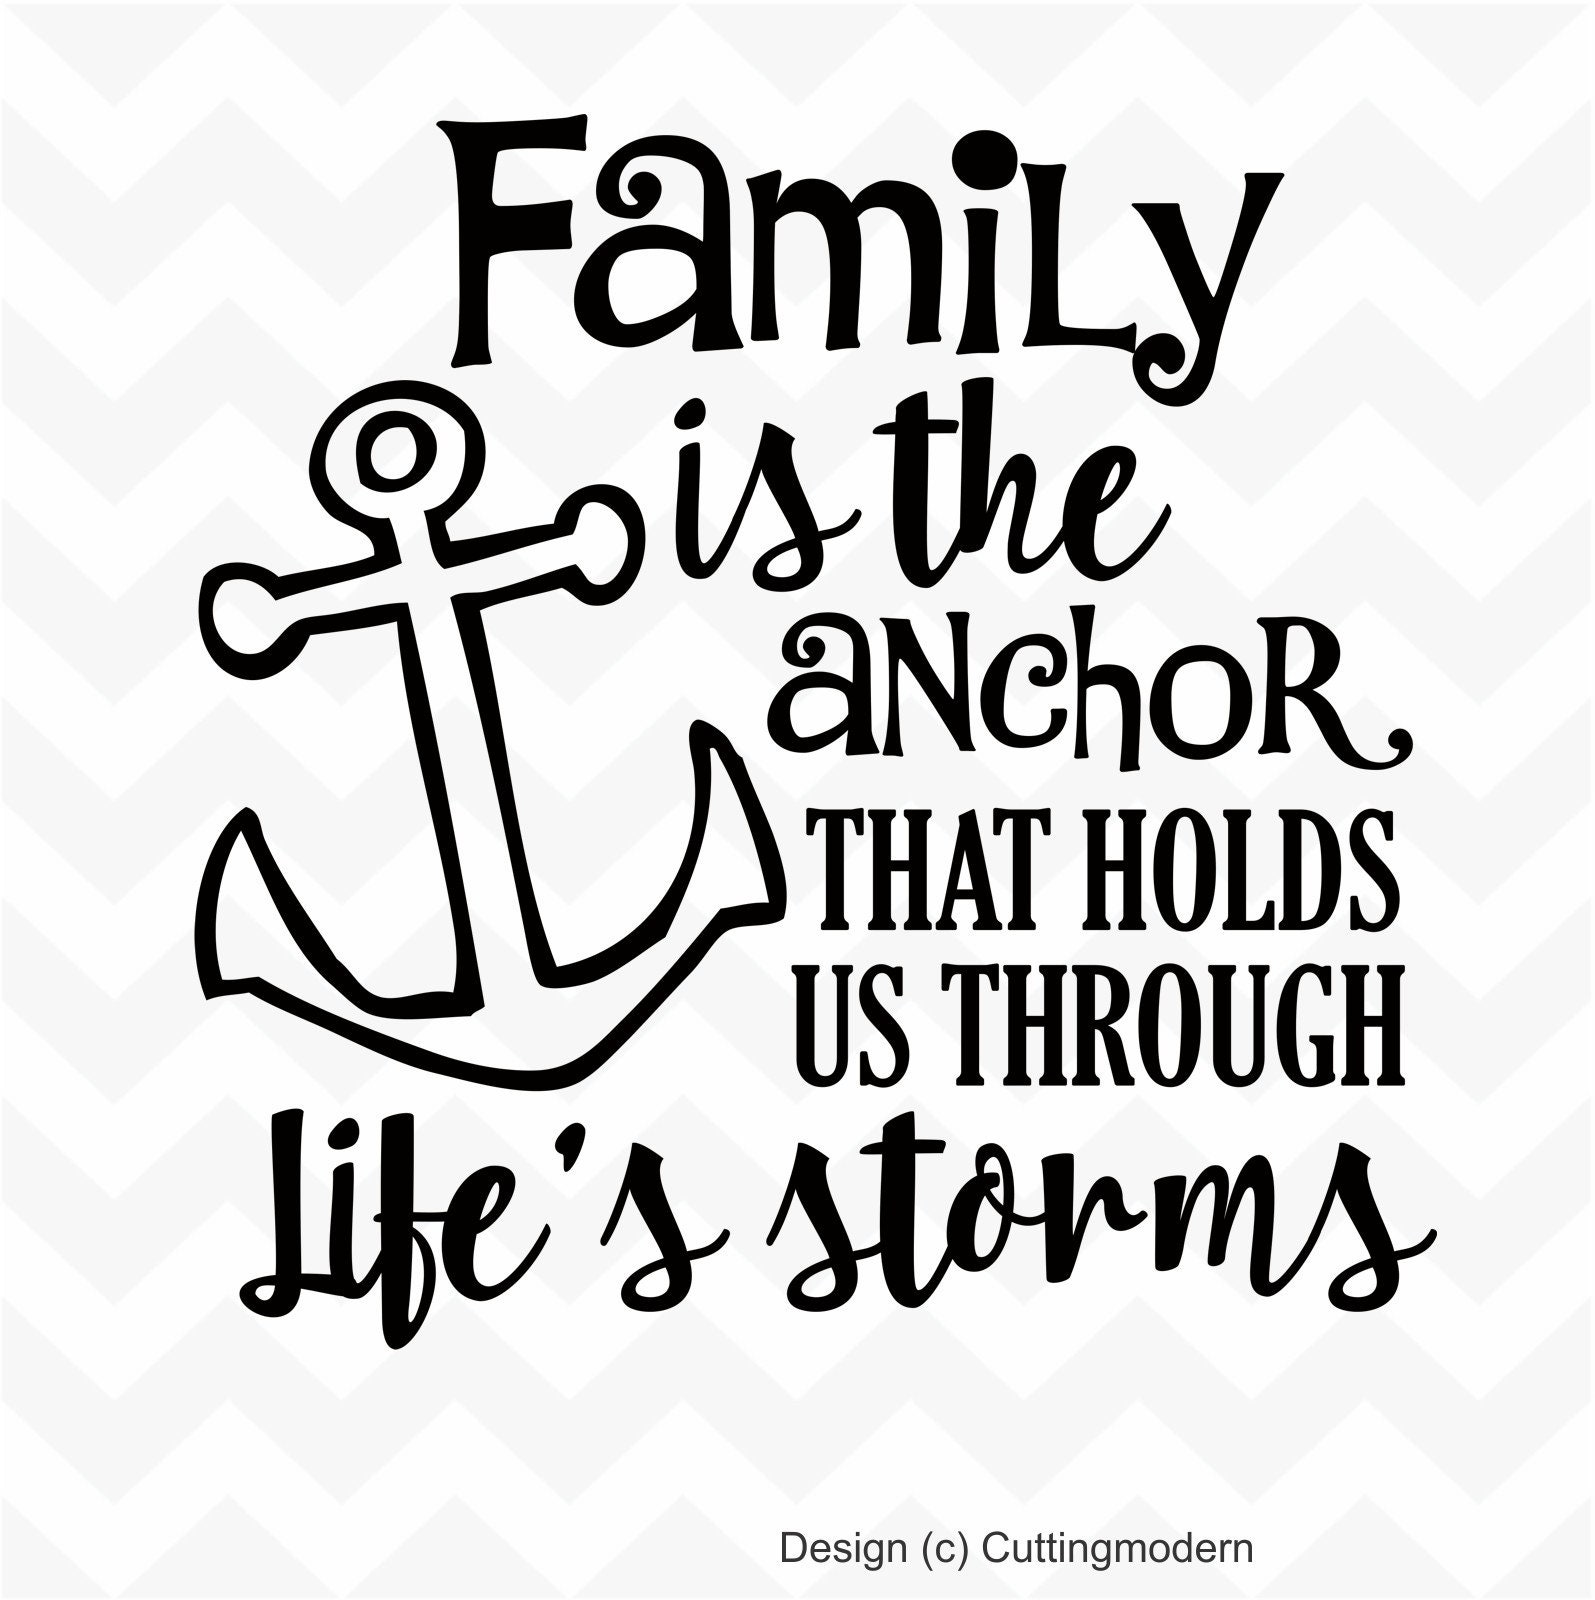 Stacking Bracelet Sympathy Gift Family Quote Family Bracelet Family Is Our Anchor Bracelet Family Holds Us Through Life\u2019s Storms